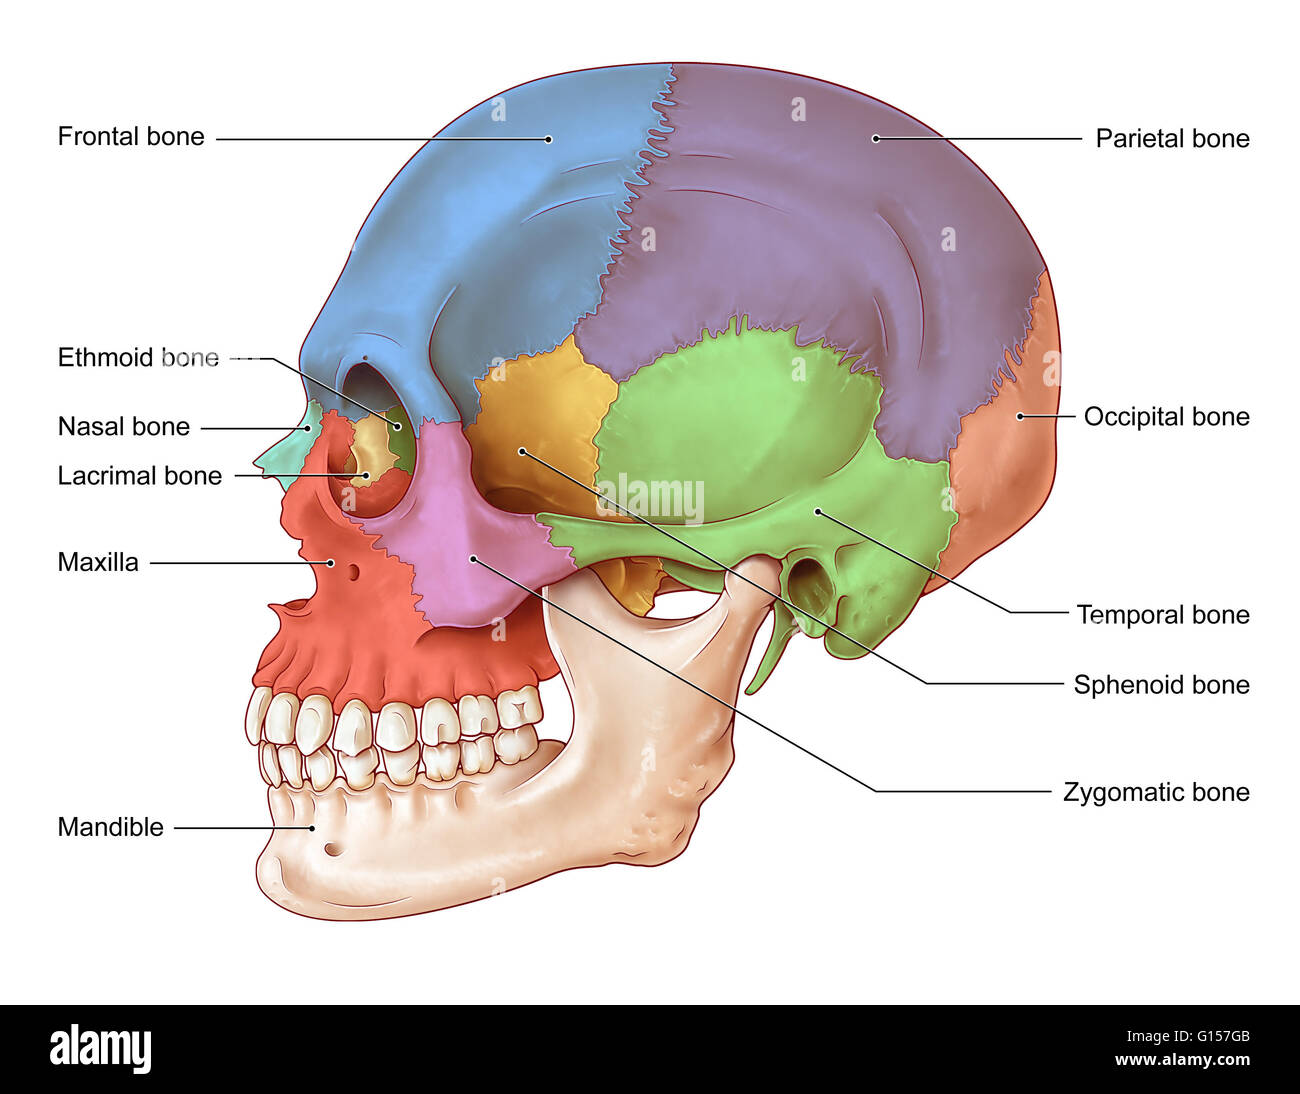 an illustration of the human skull from a lateral view. the bones, Human Body